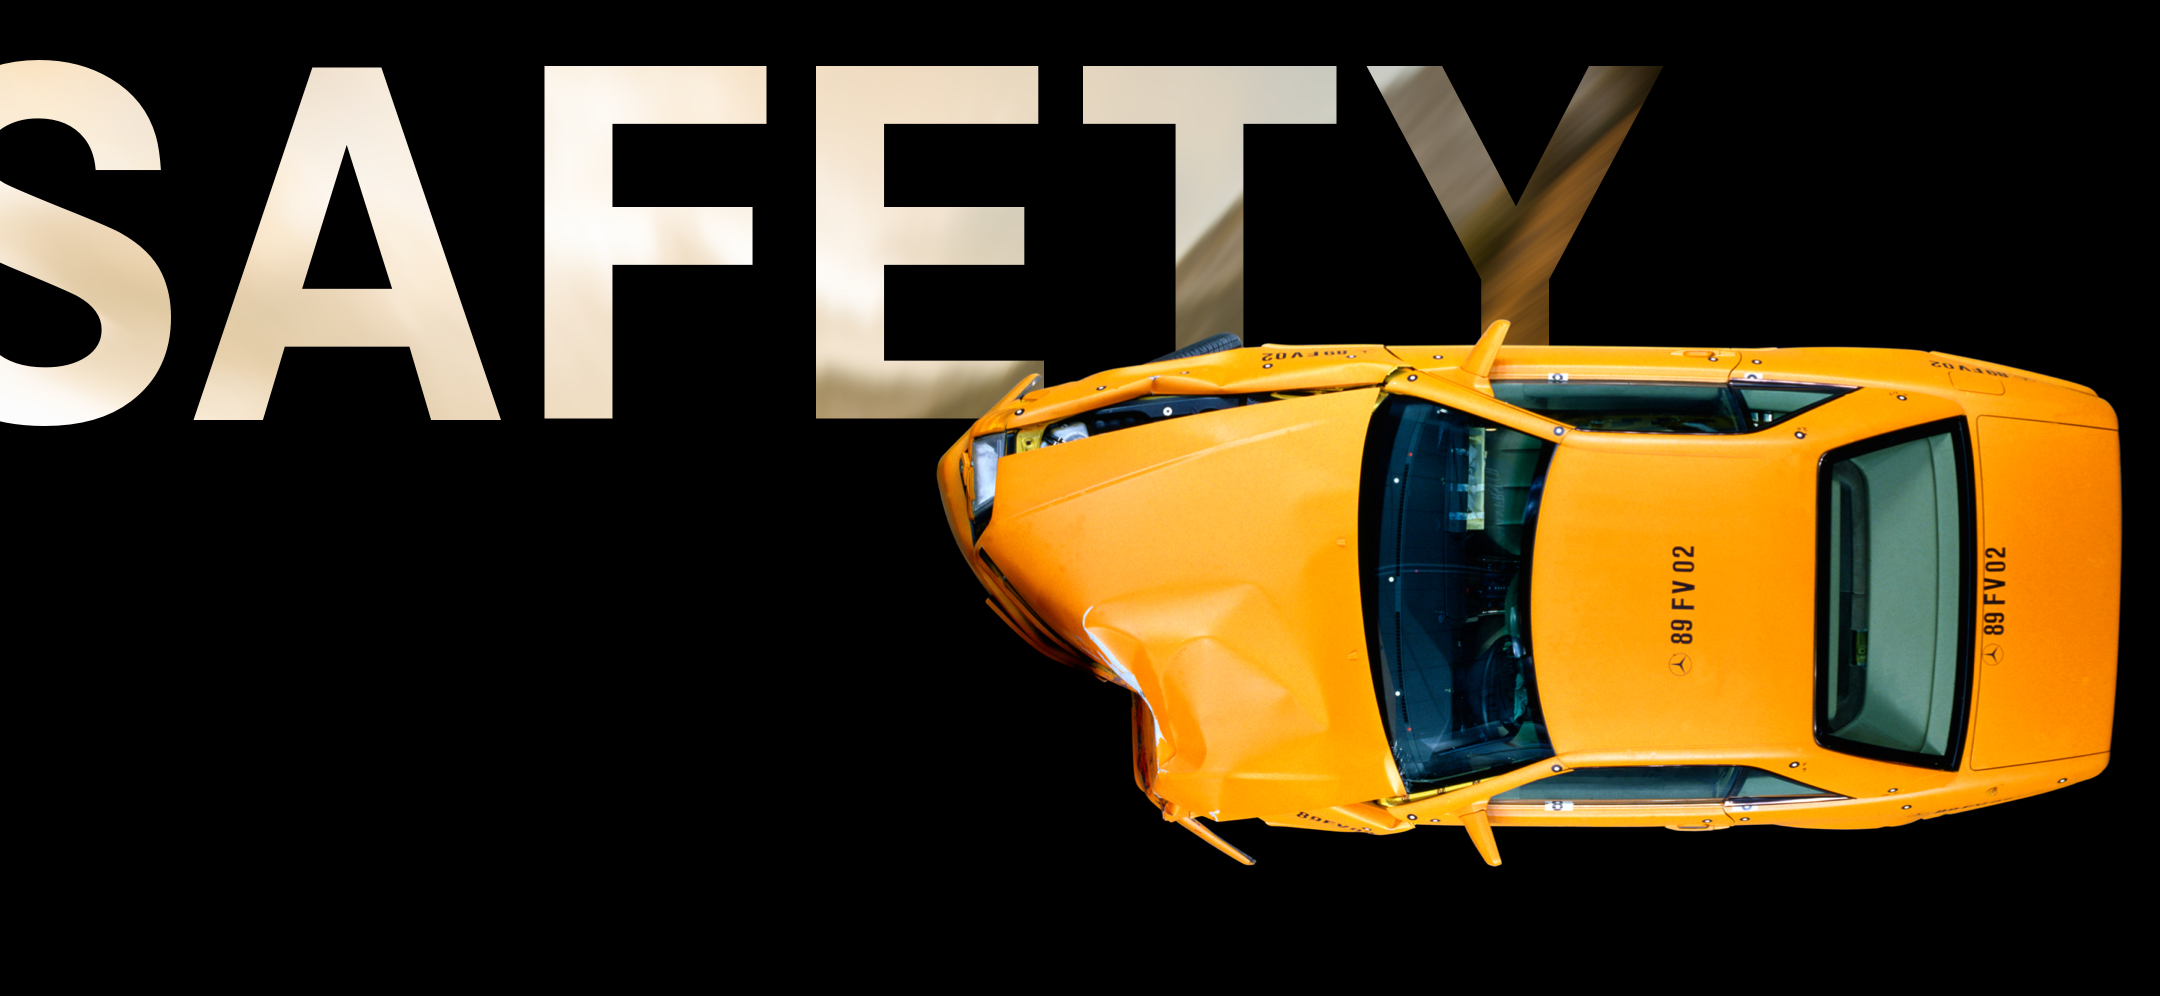 The Best Or Nothing   Safety   Mercedes-Benz USA